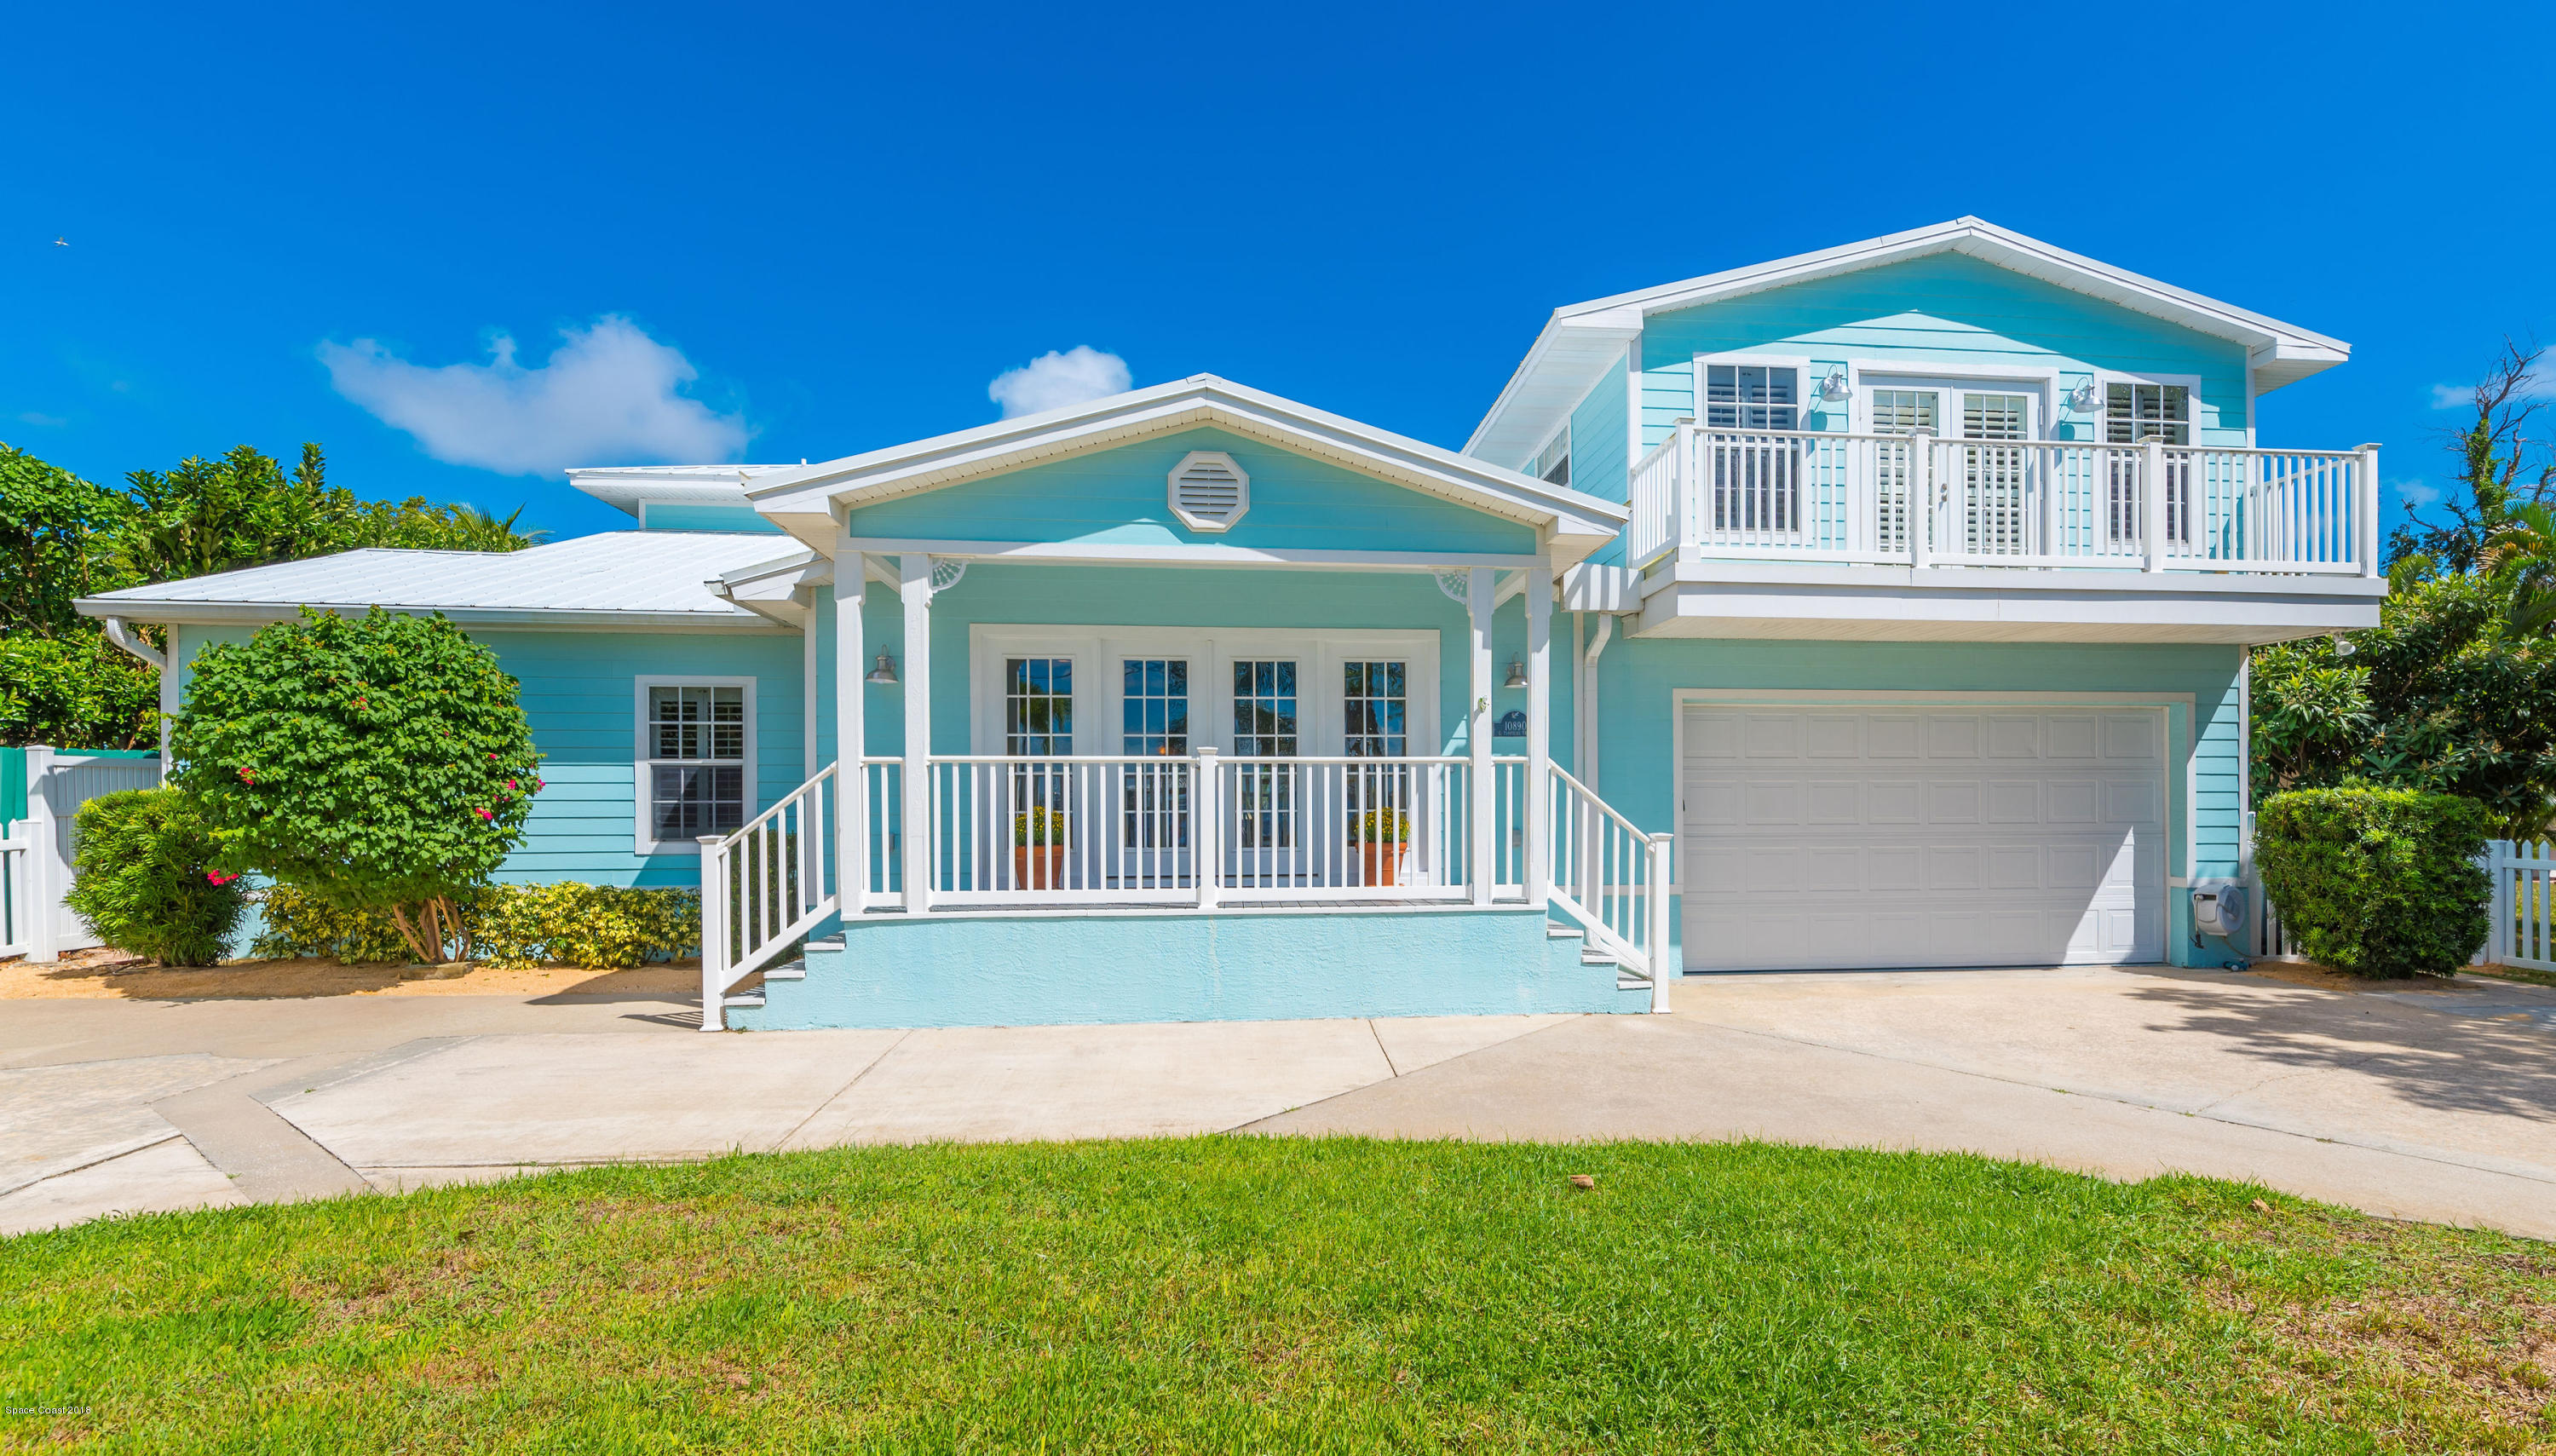 Single Family Home for Sale at 10890 S Tropical 10890 S Tropical Merritt Island, Florida 32952 United States